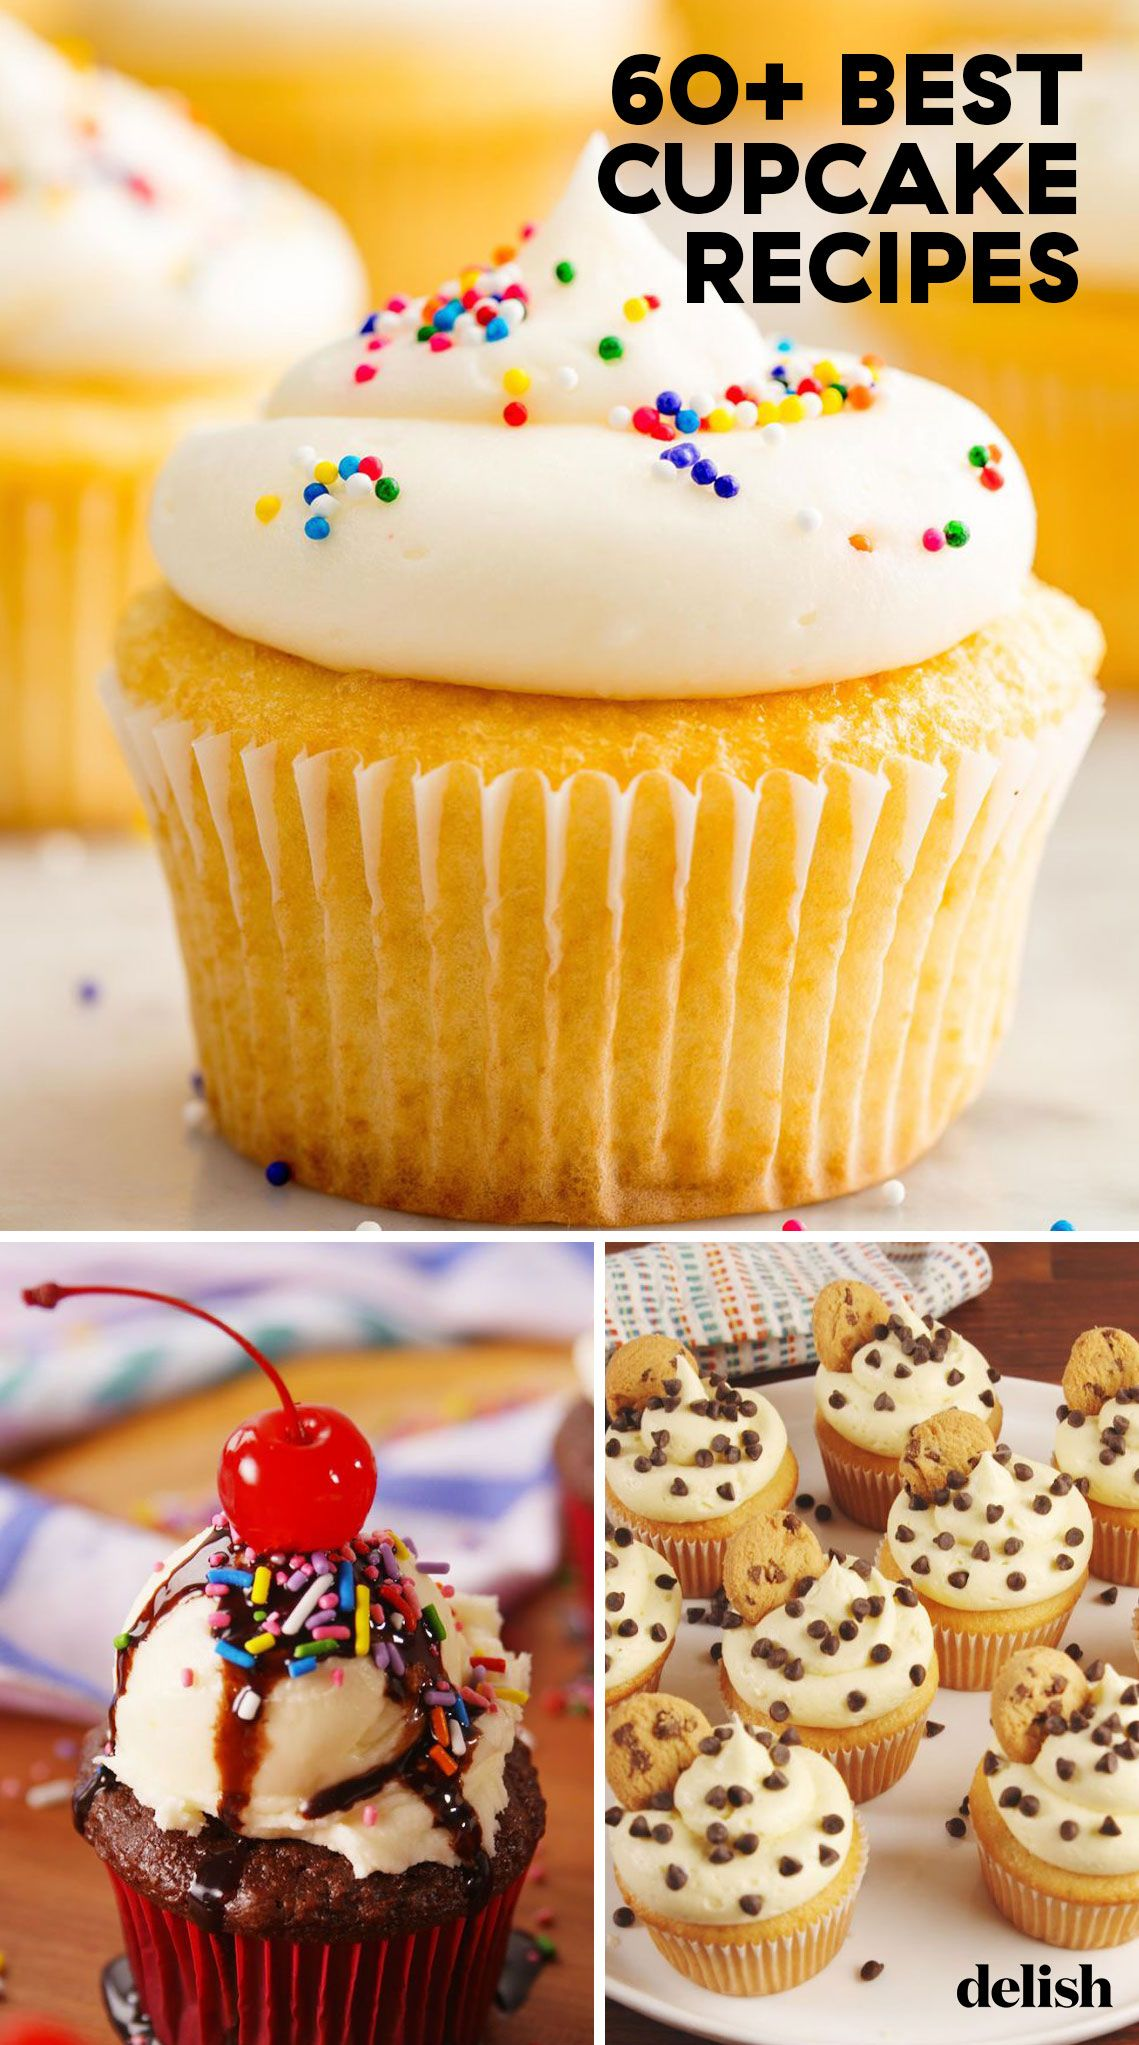 65 Easy Cupcake Recipes From Scratch How To Make Homemade Cupcakes Delish Com